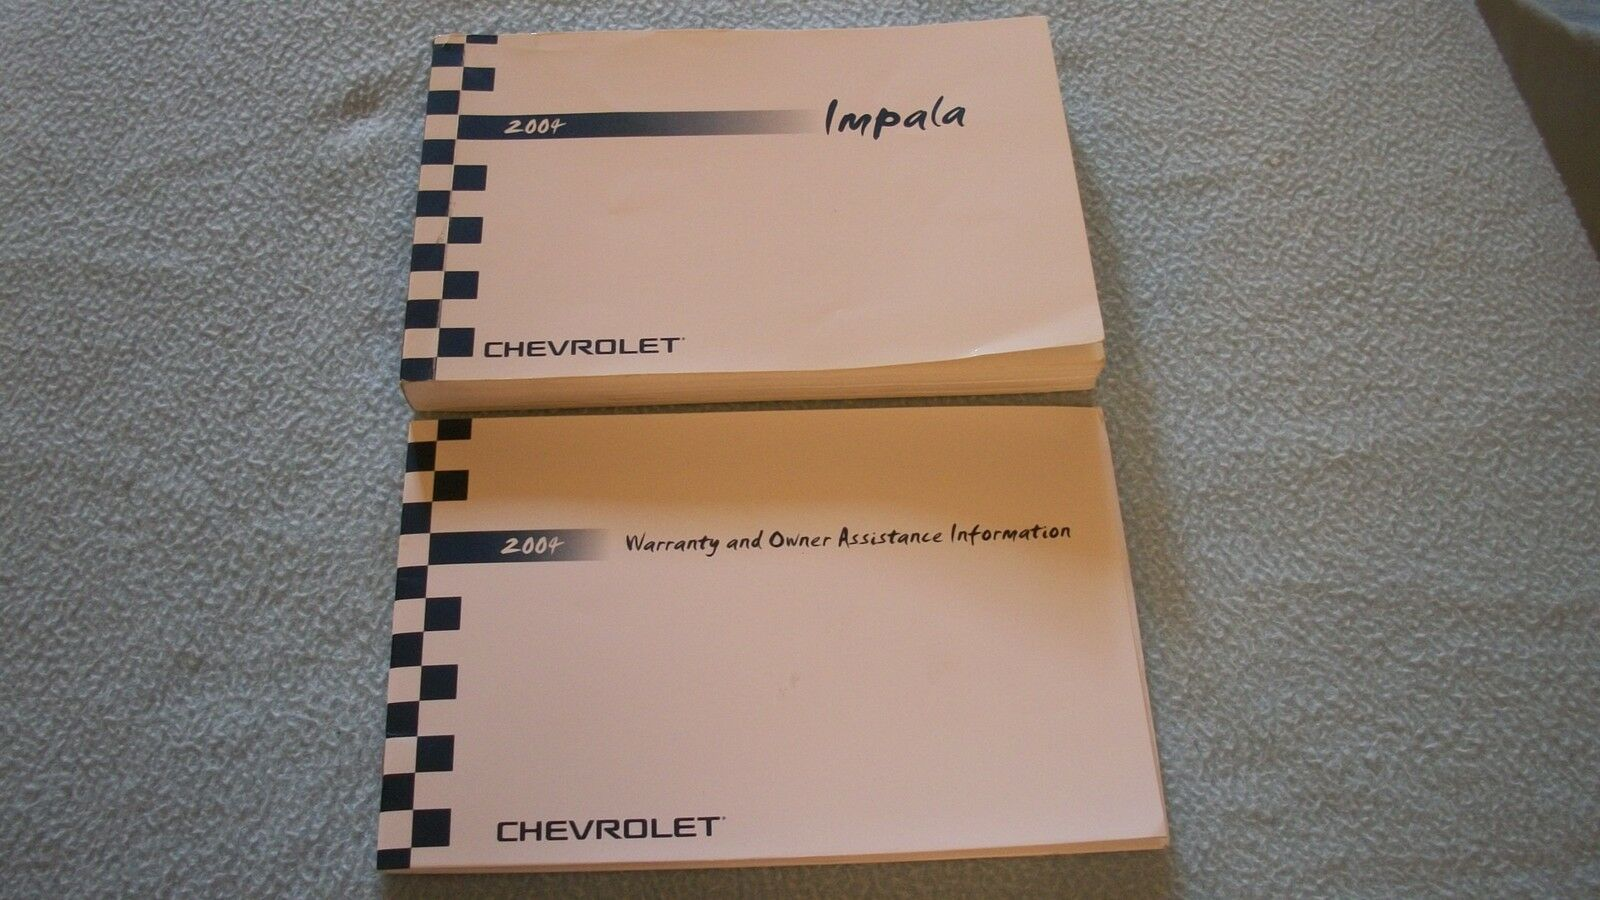 2004 Chevrolet Impala Owners Manual with binder 1 of 1Only 1 available ...